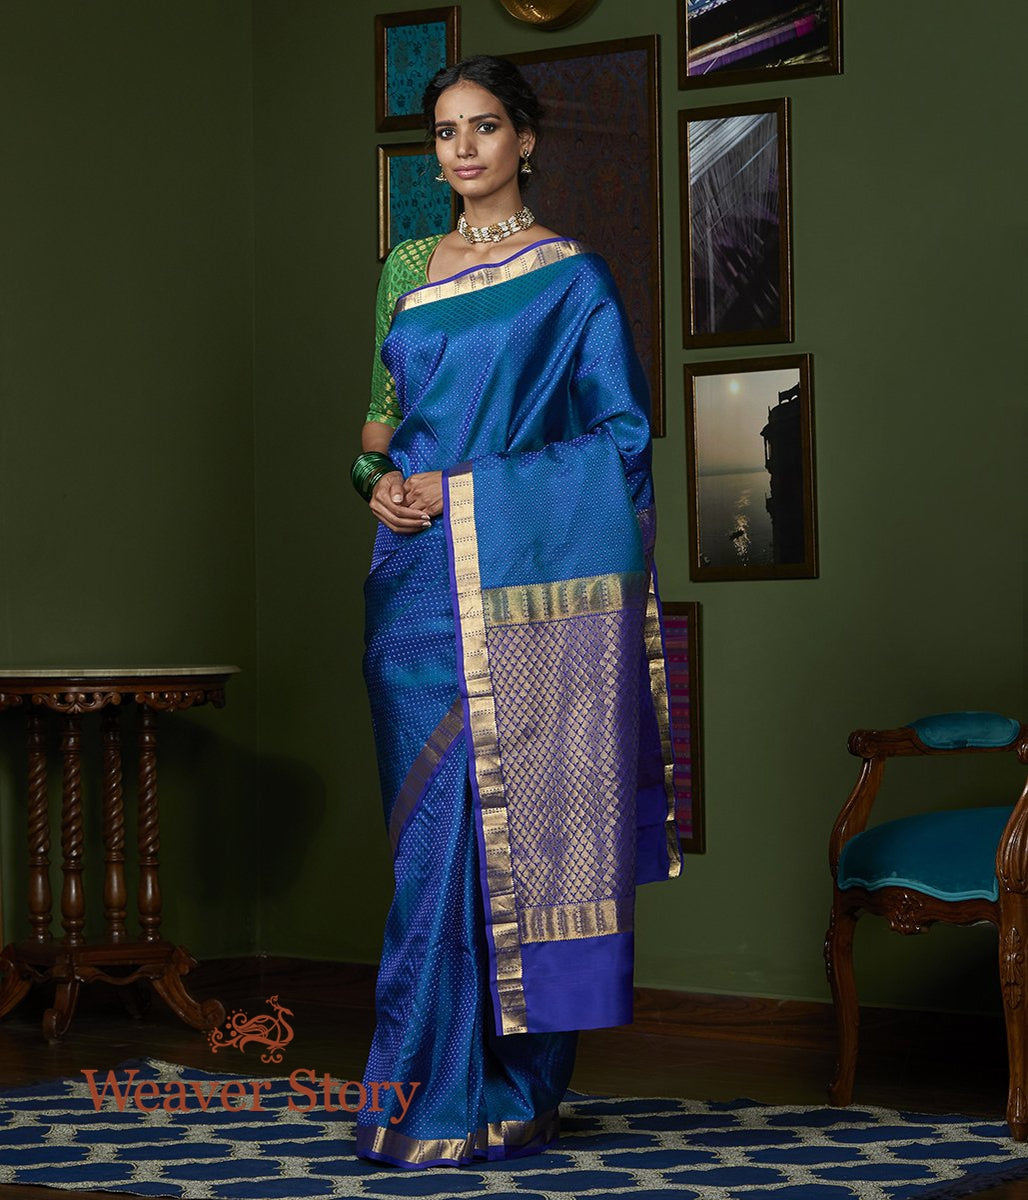 Handwoven Peacock Blue Self Weave Kanjivaram Saree with Purple Border